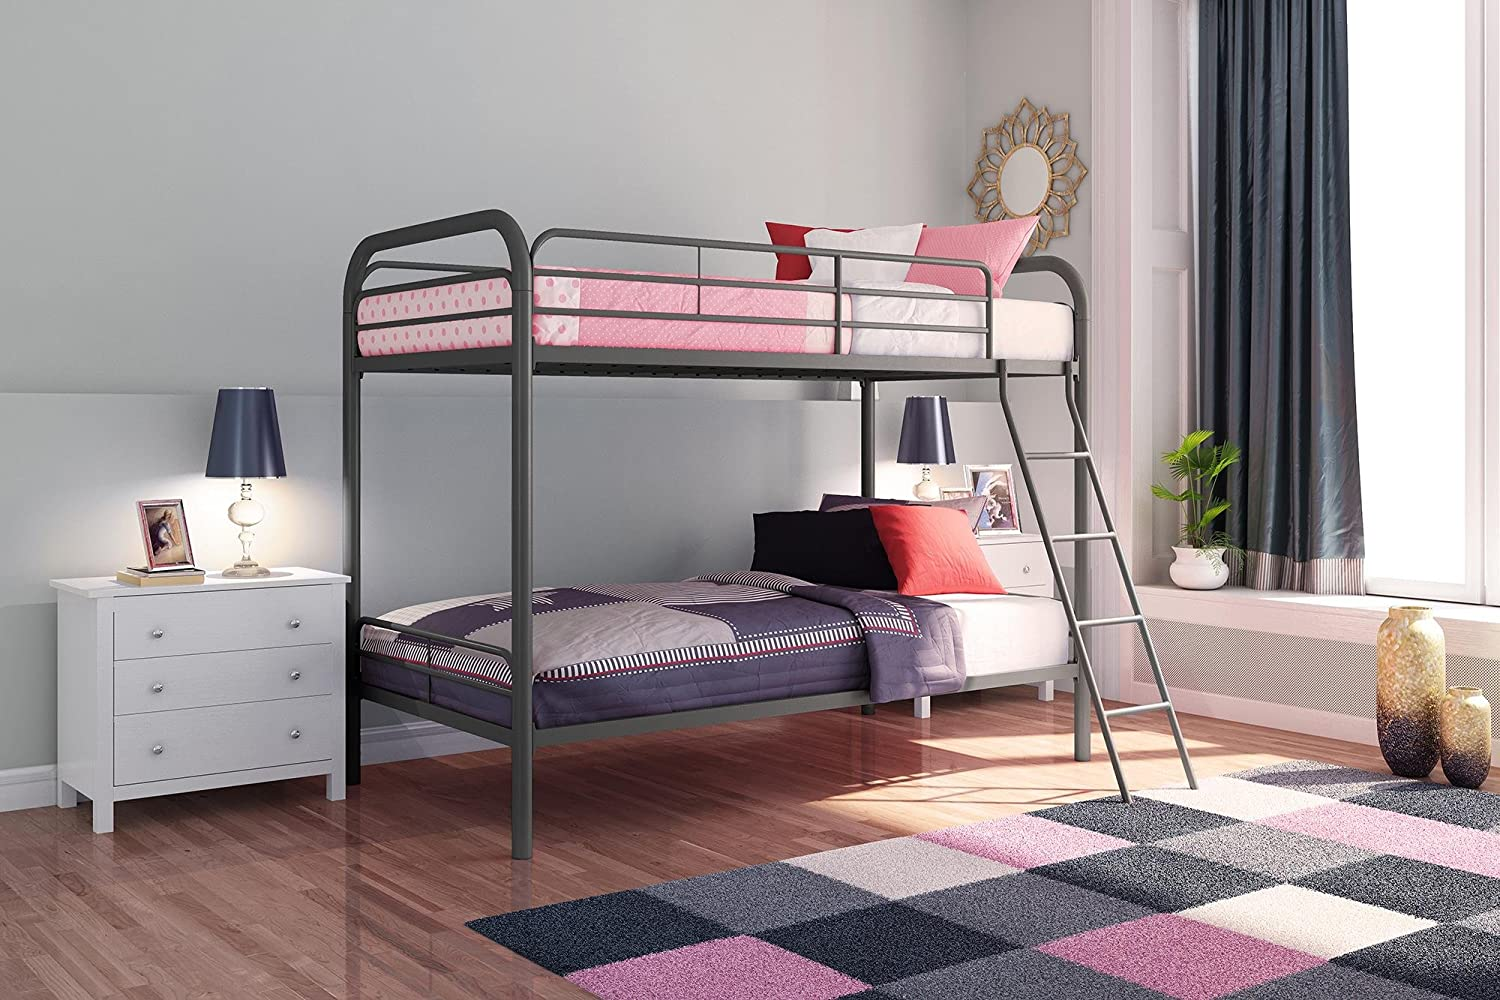 Amazon Com Dhp Twin Over Twin Bunk Bed With Metal Frame And Ladder Space Saving Design Silver Furniture Decor